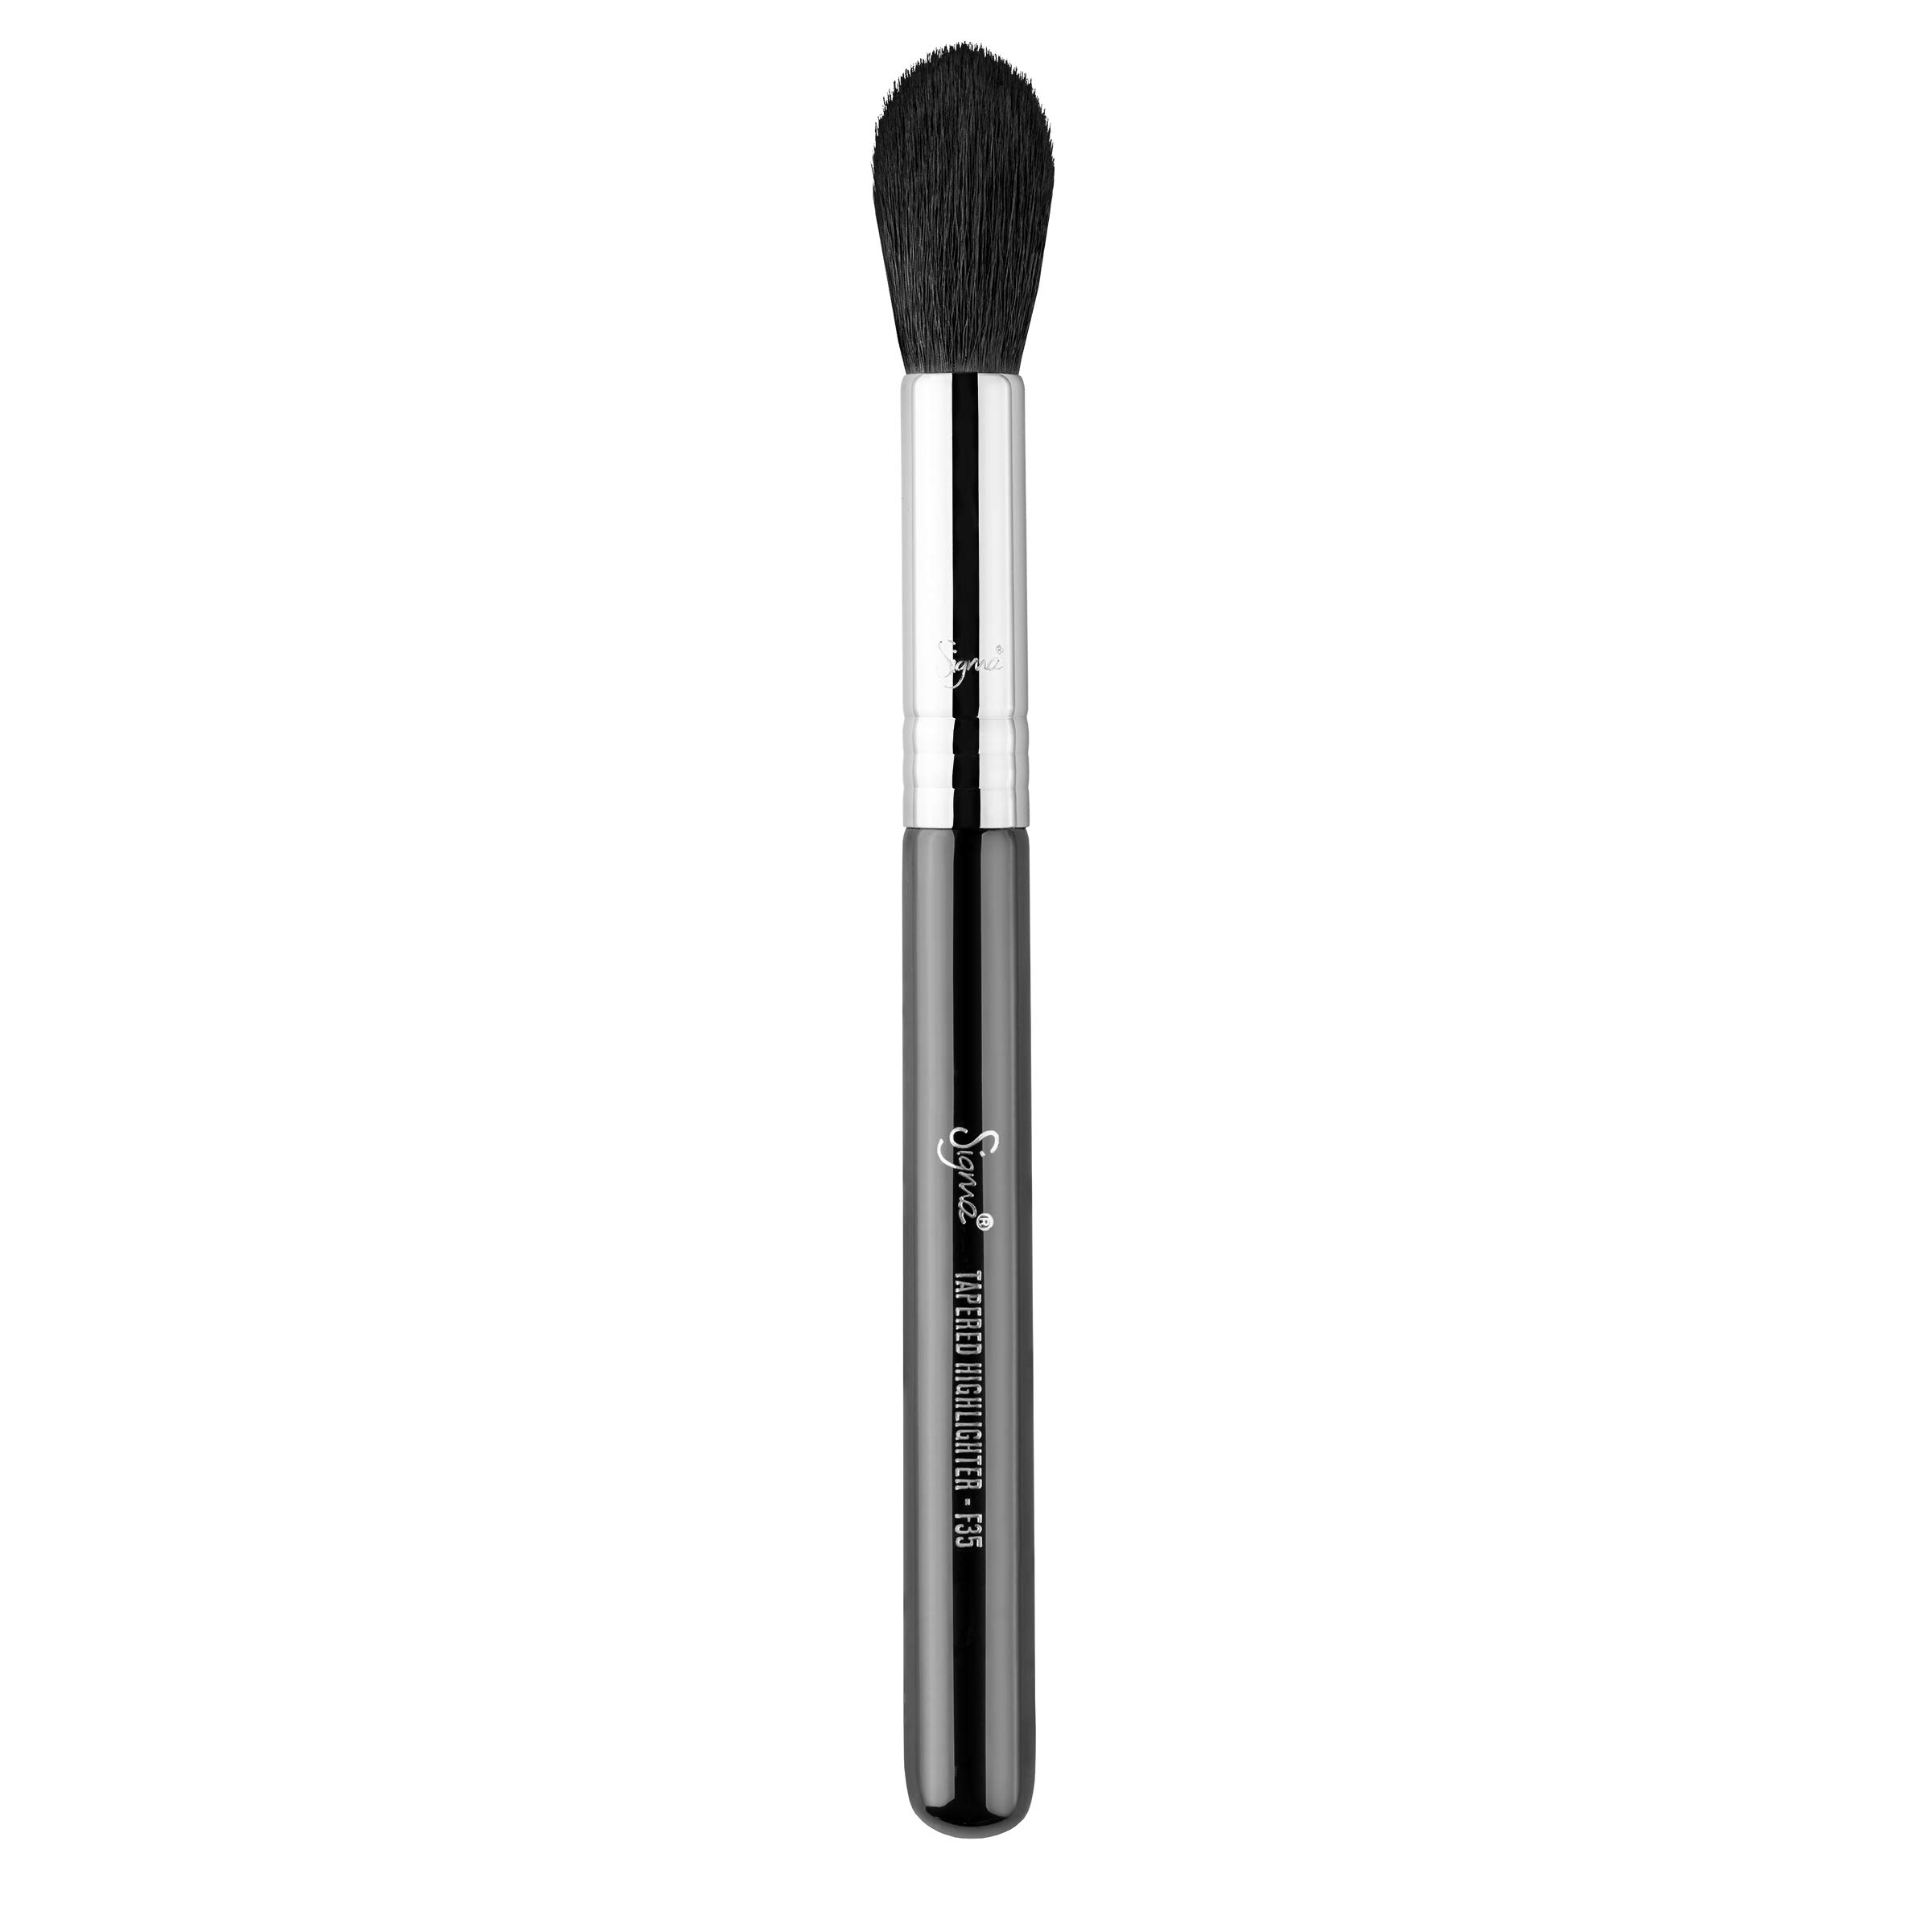 Sigma Beauty Professional F35 Tapered